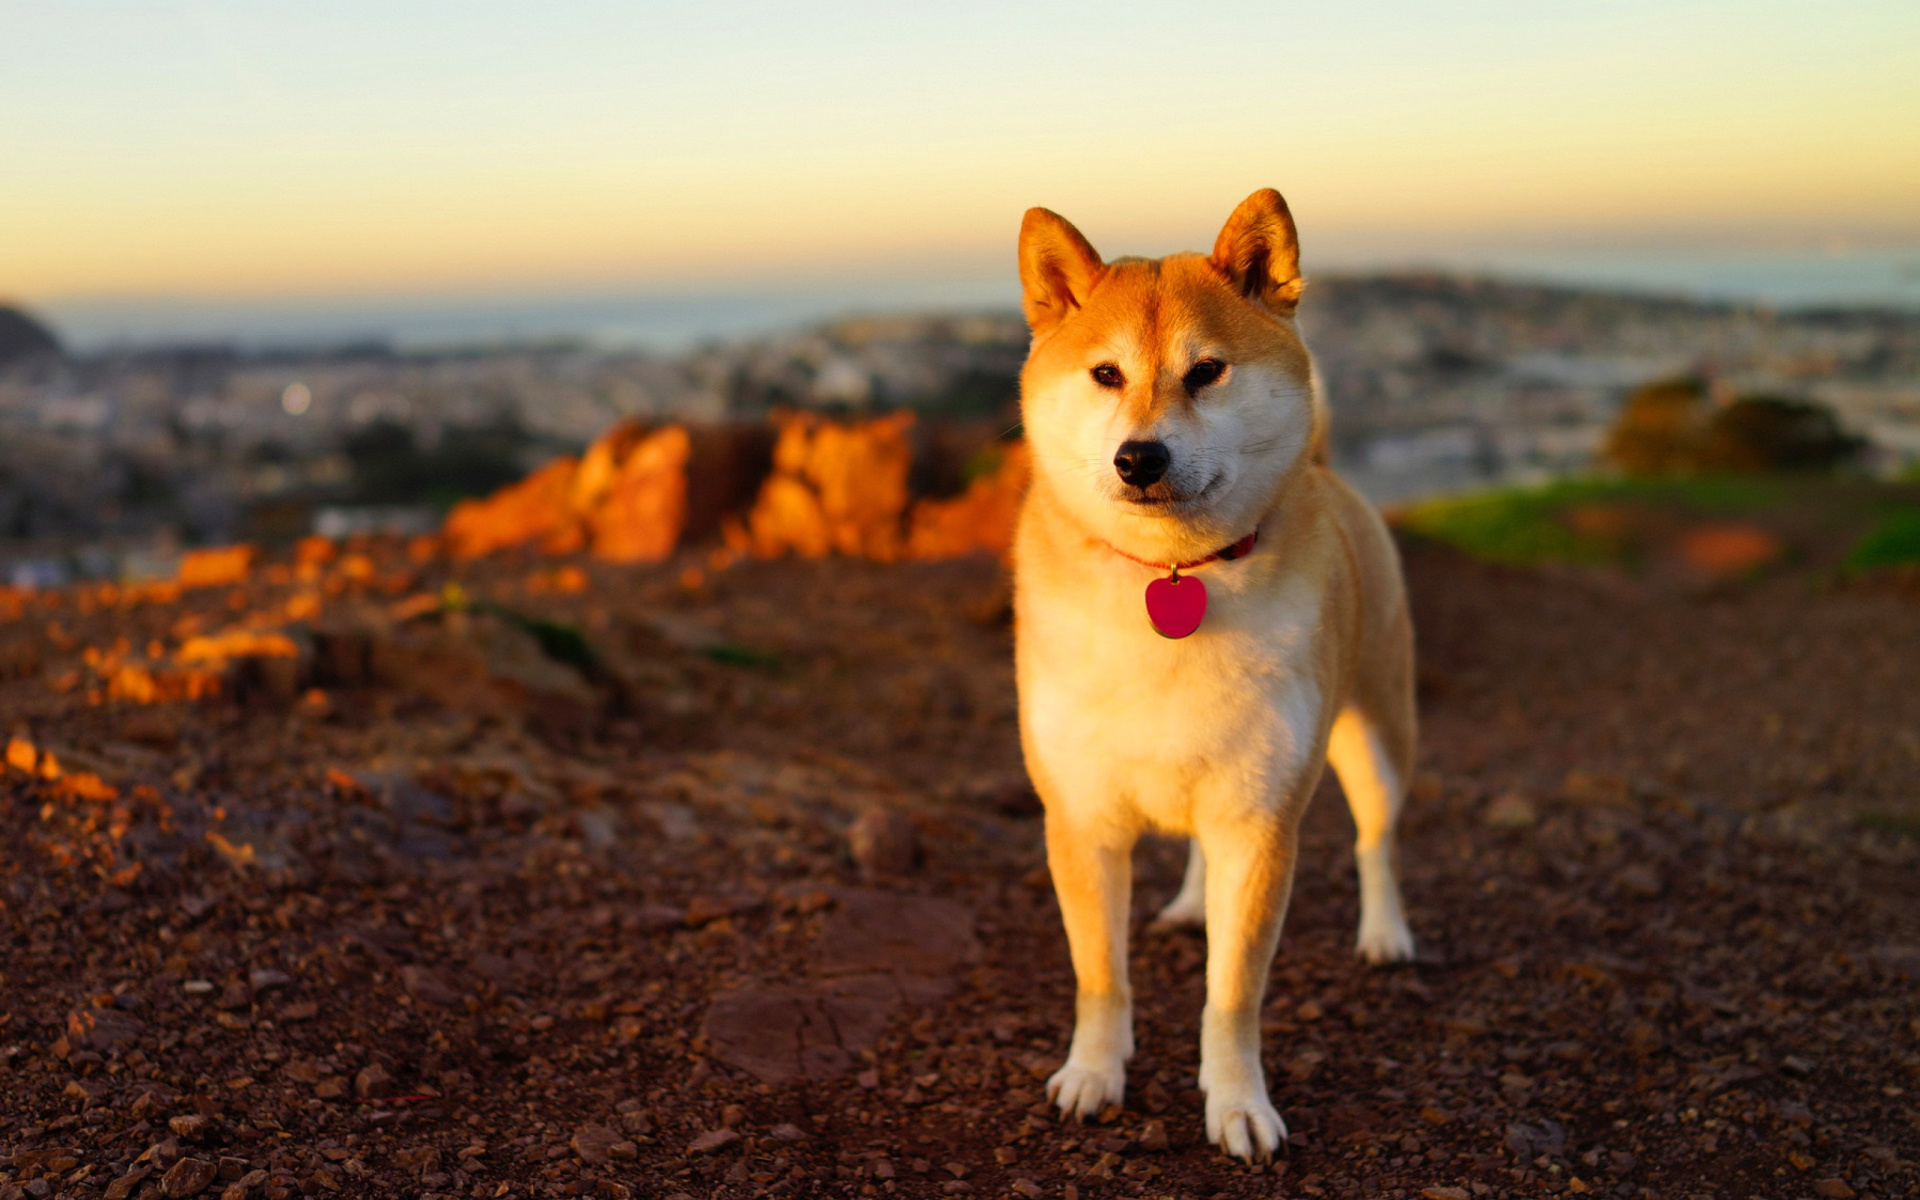 dog hd wallpaper widescreen 1920x1080 - photo #1